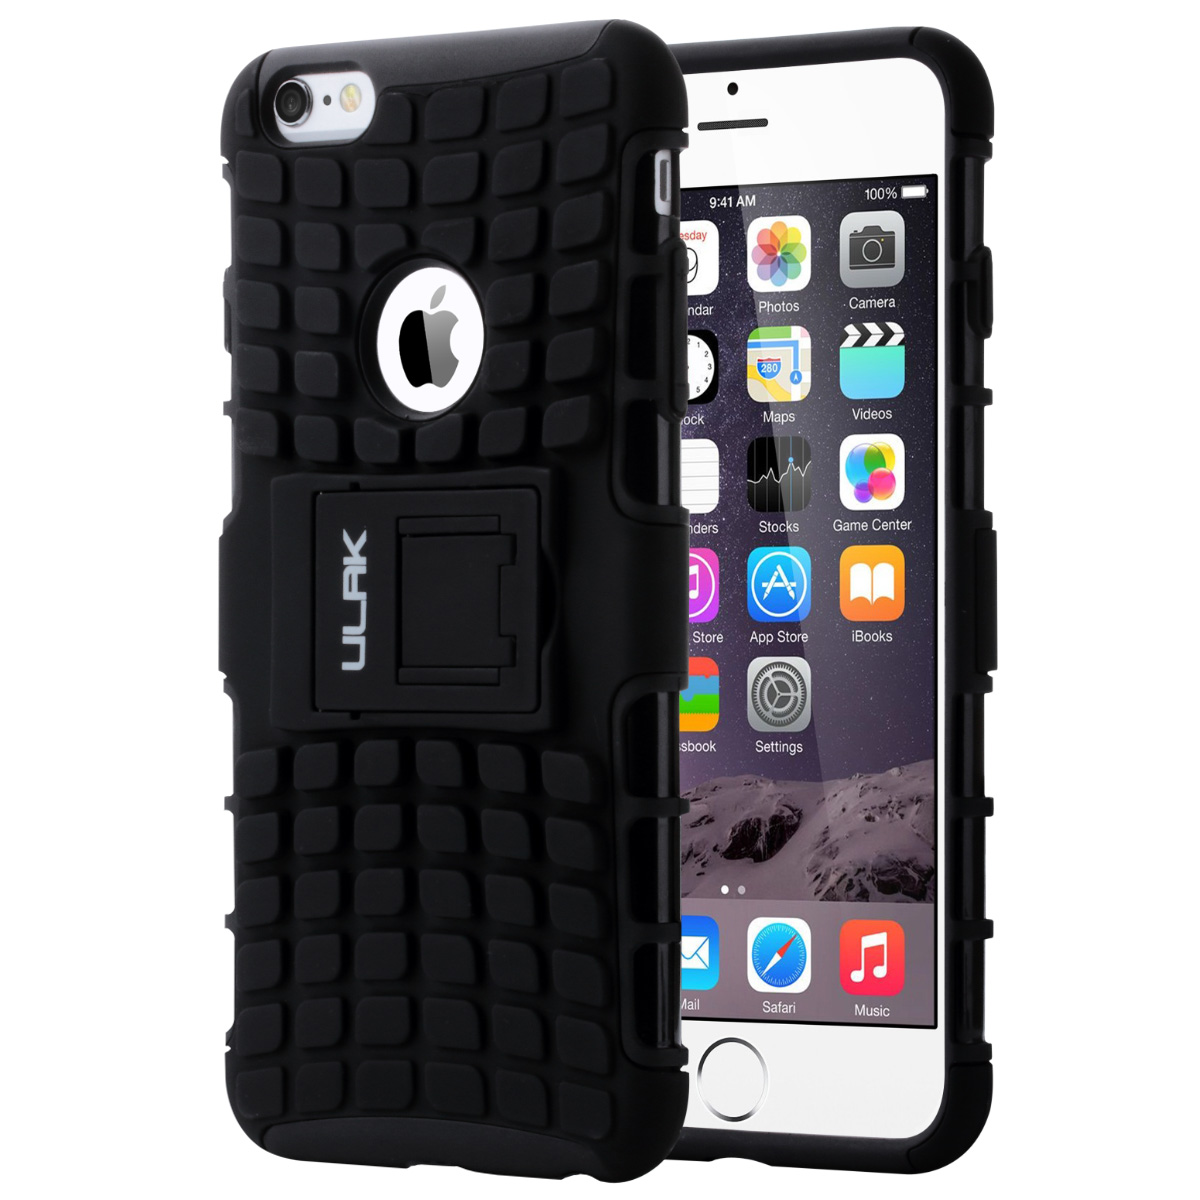 ULAK iPhone 6 plus Case Shock Absorbing Case Hybrid 2in1 Cover PC and TPU Layers for Apple iPhone 6 Plus (5.5 inch-2014)